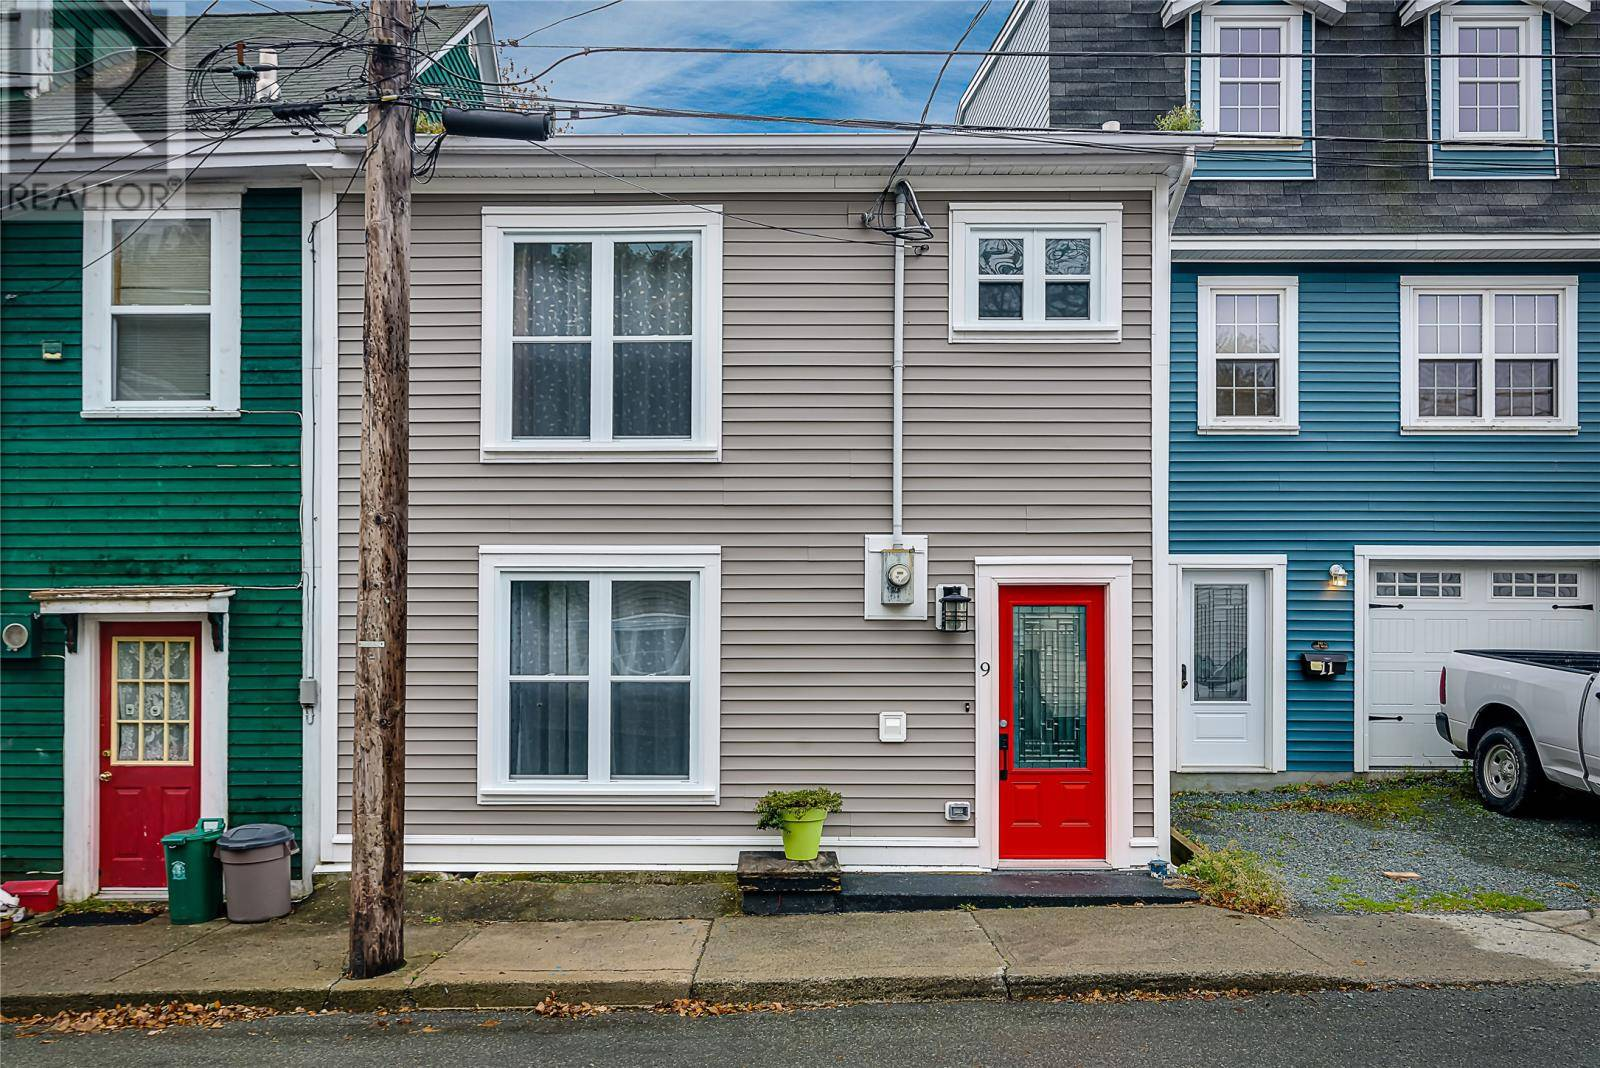 House for sale at 9 Walsh's Sq St. John's Newfoundland - MLS: 1205491